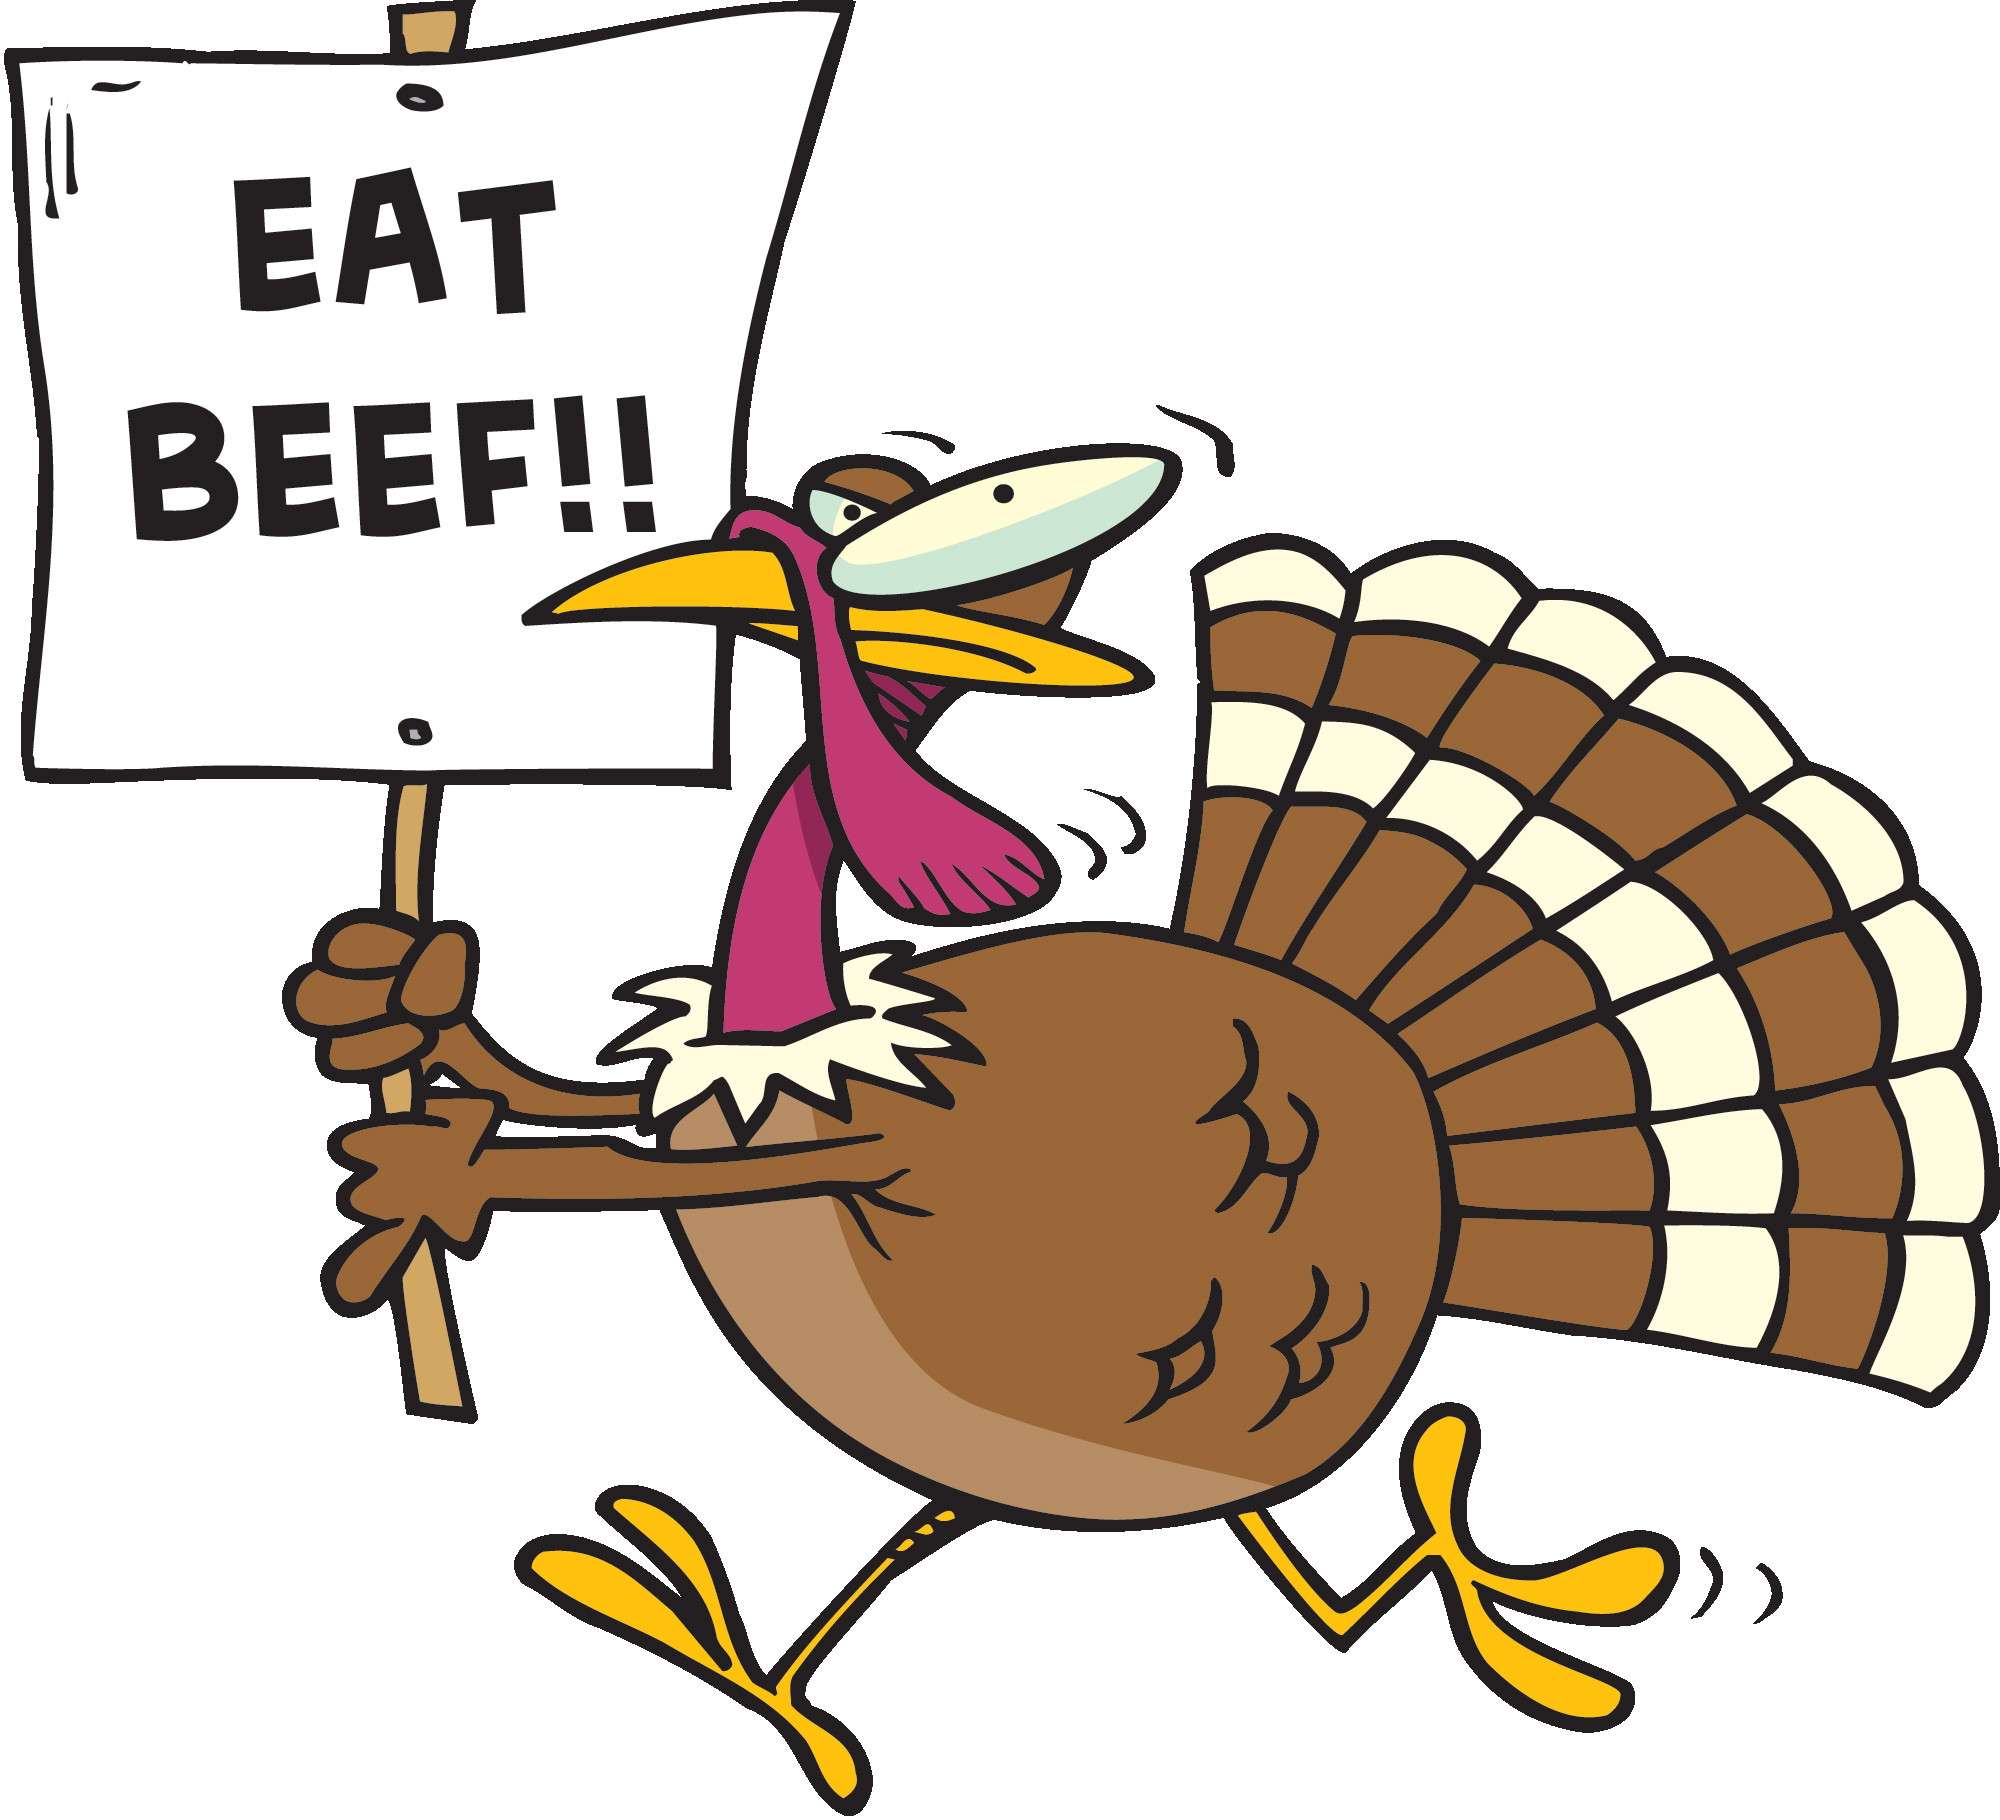 Free Turkey Clipart Thanksgiving  Eat Beef Funny Turkey Clipart Image